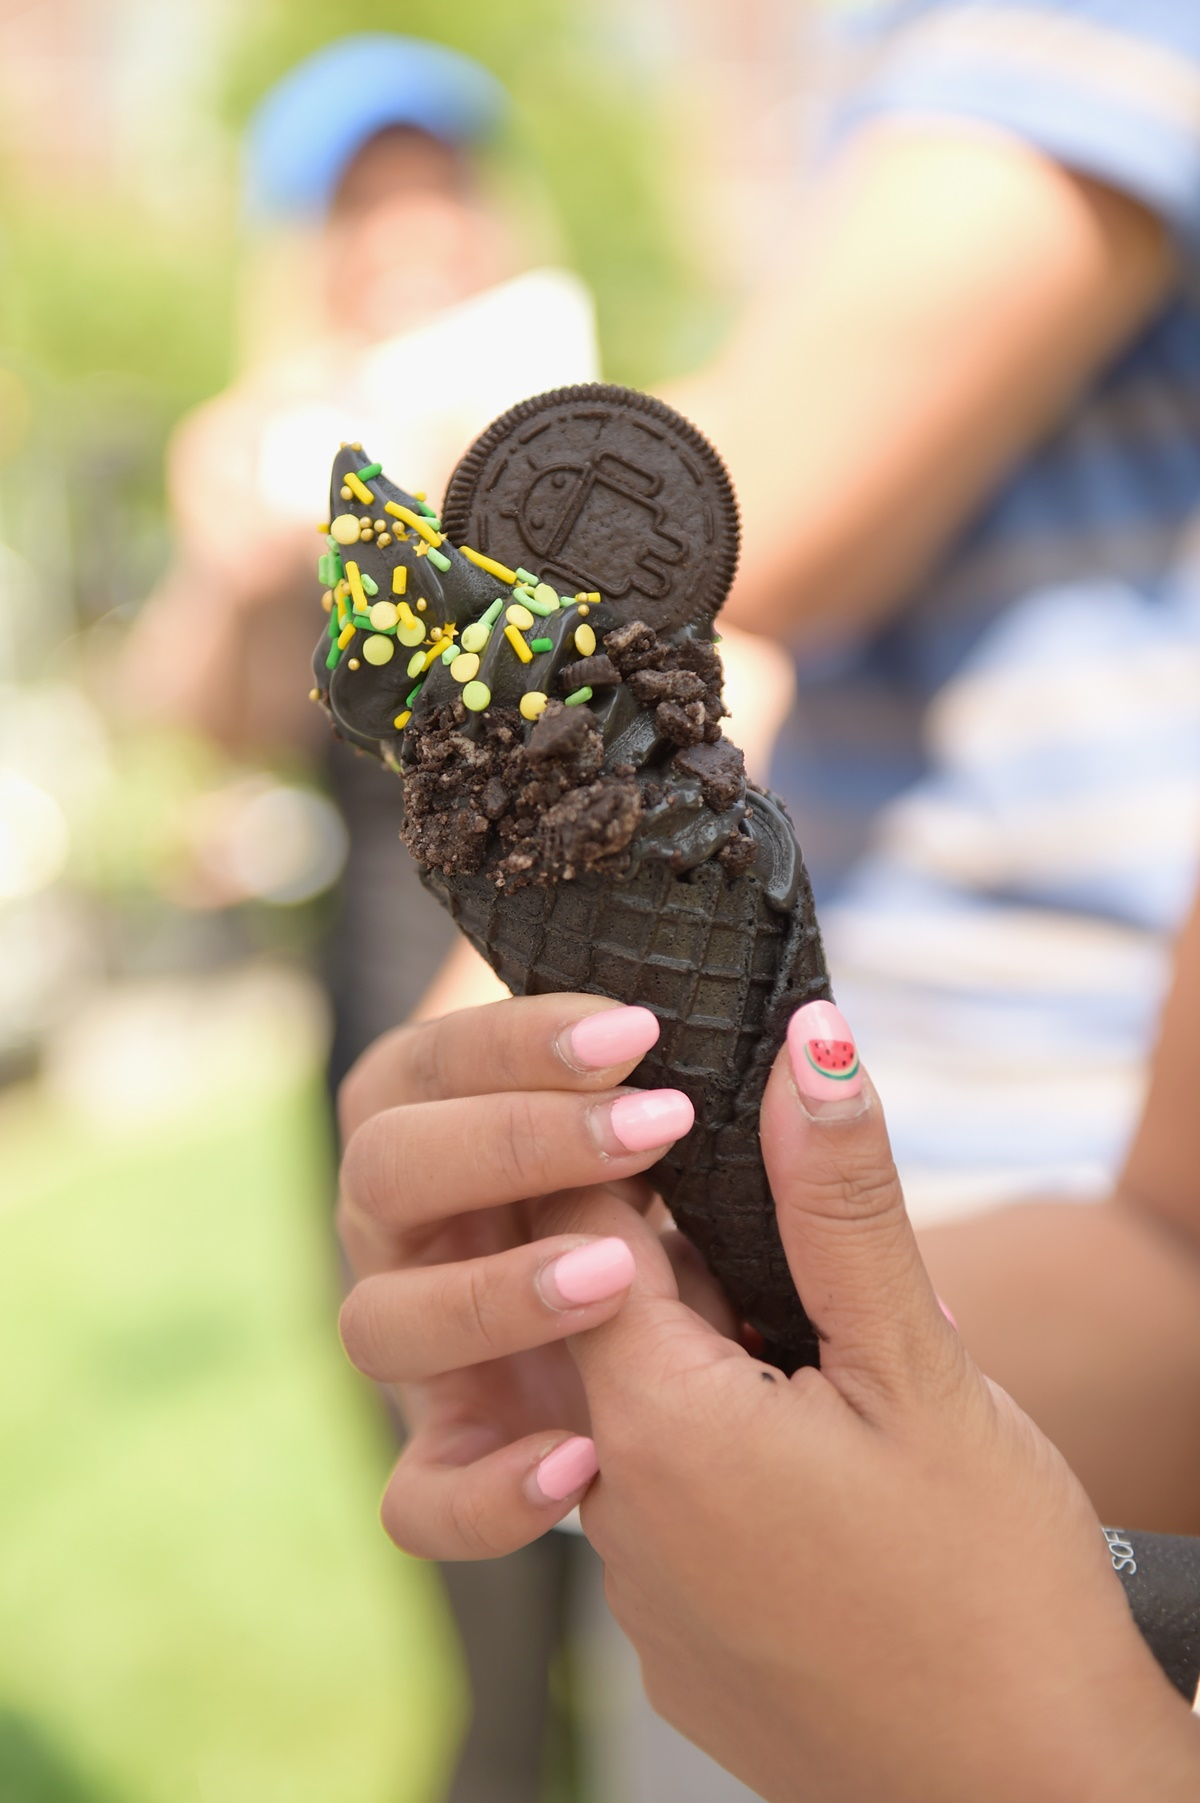 NEW YORK, NY - AUGUST 21: A guest samples a custom Little Damage ice cream flavor as Google and Oreo reveal Android OREO during the solar eclipse at the 14th street park on August 21, 2017 in New York City.   Jason Kempin/Getty Images for Oreo/AFP